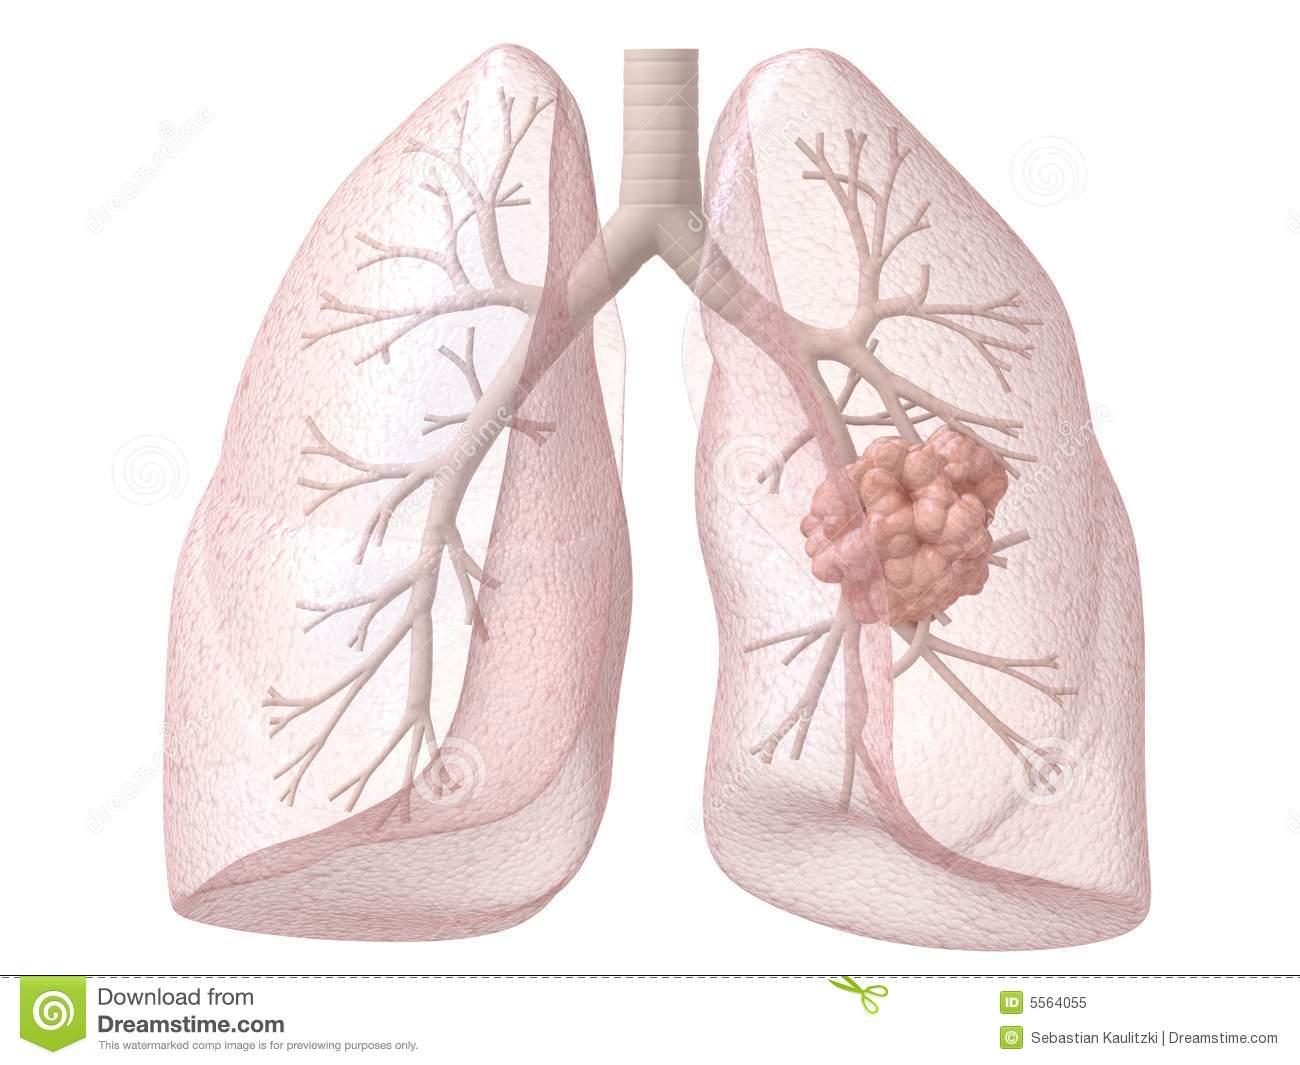 Lung cancer stock illustration. Illustration of anatomy - 11954226